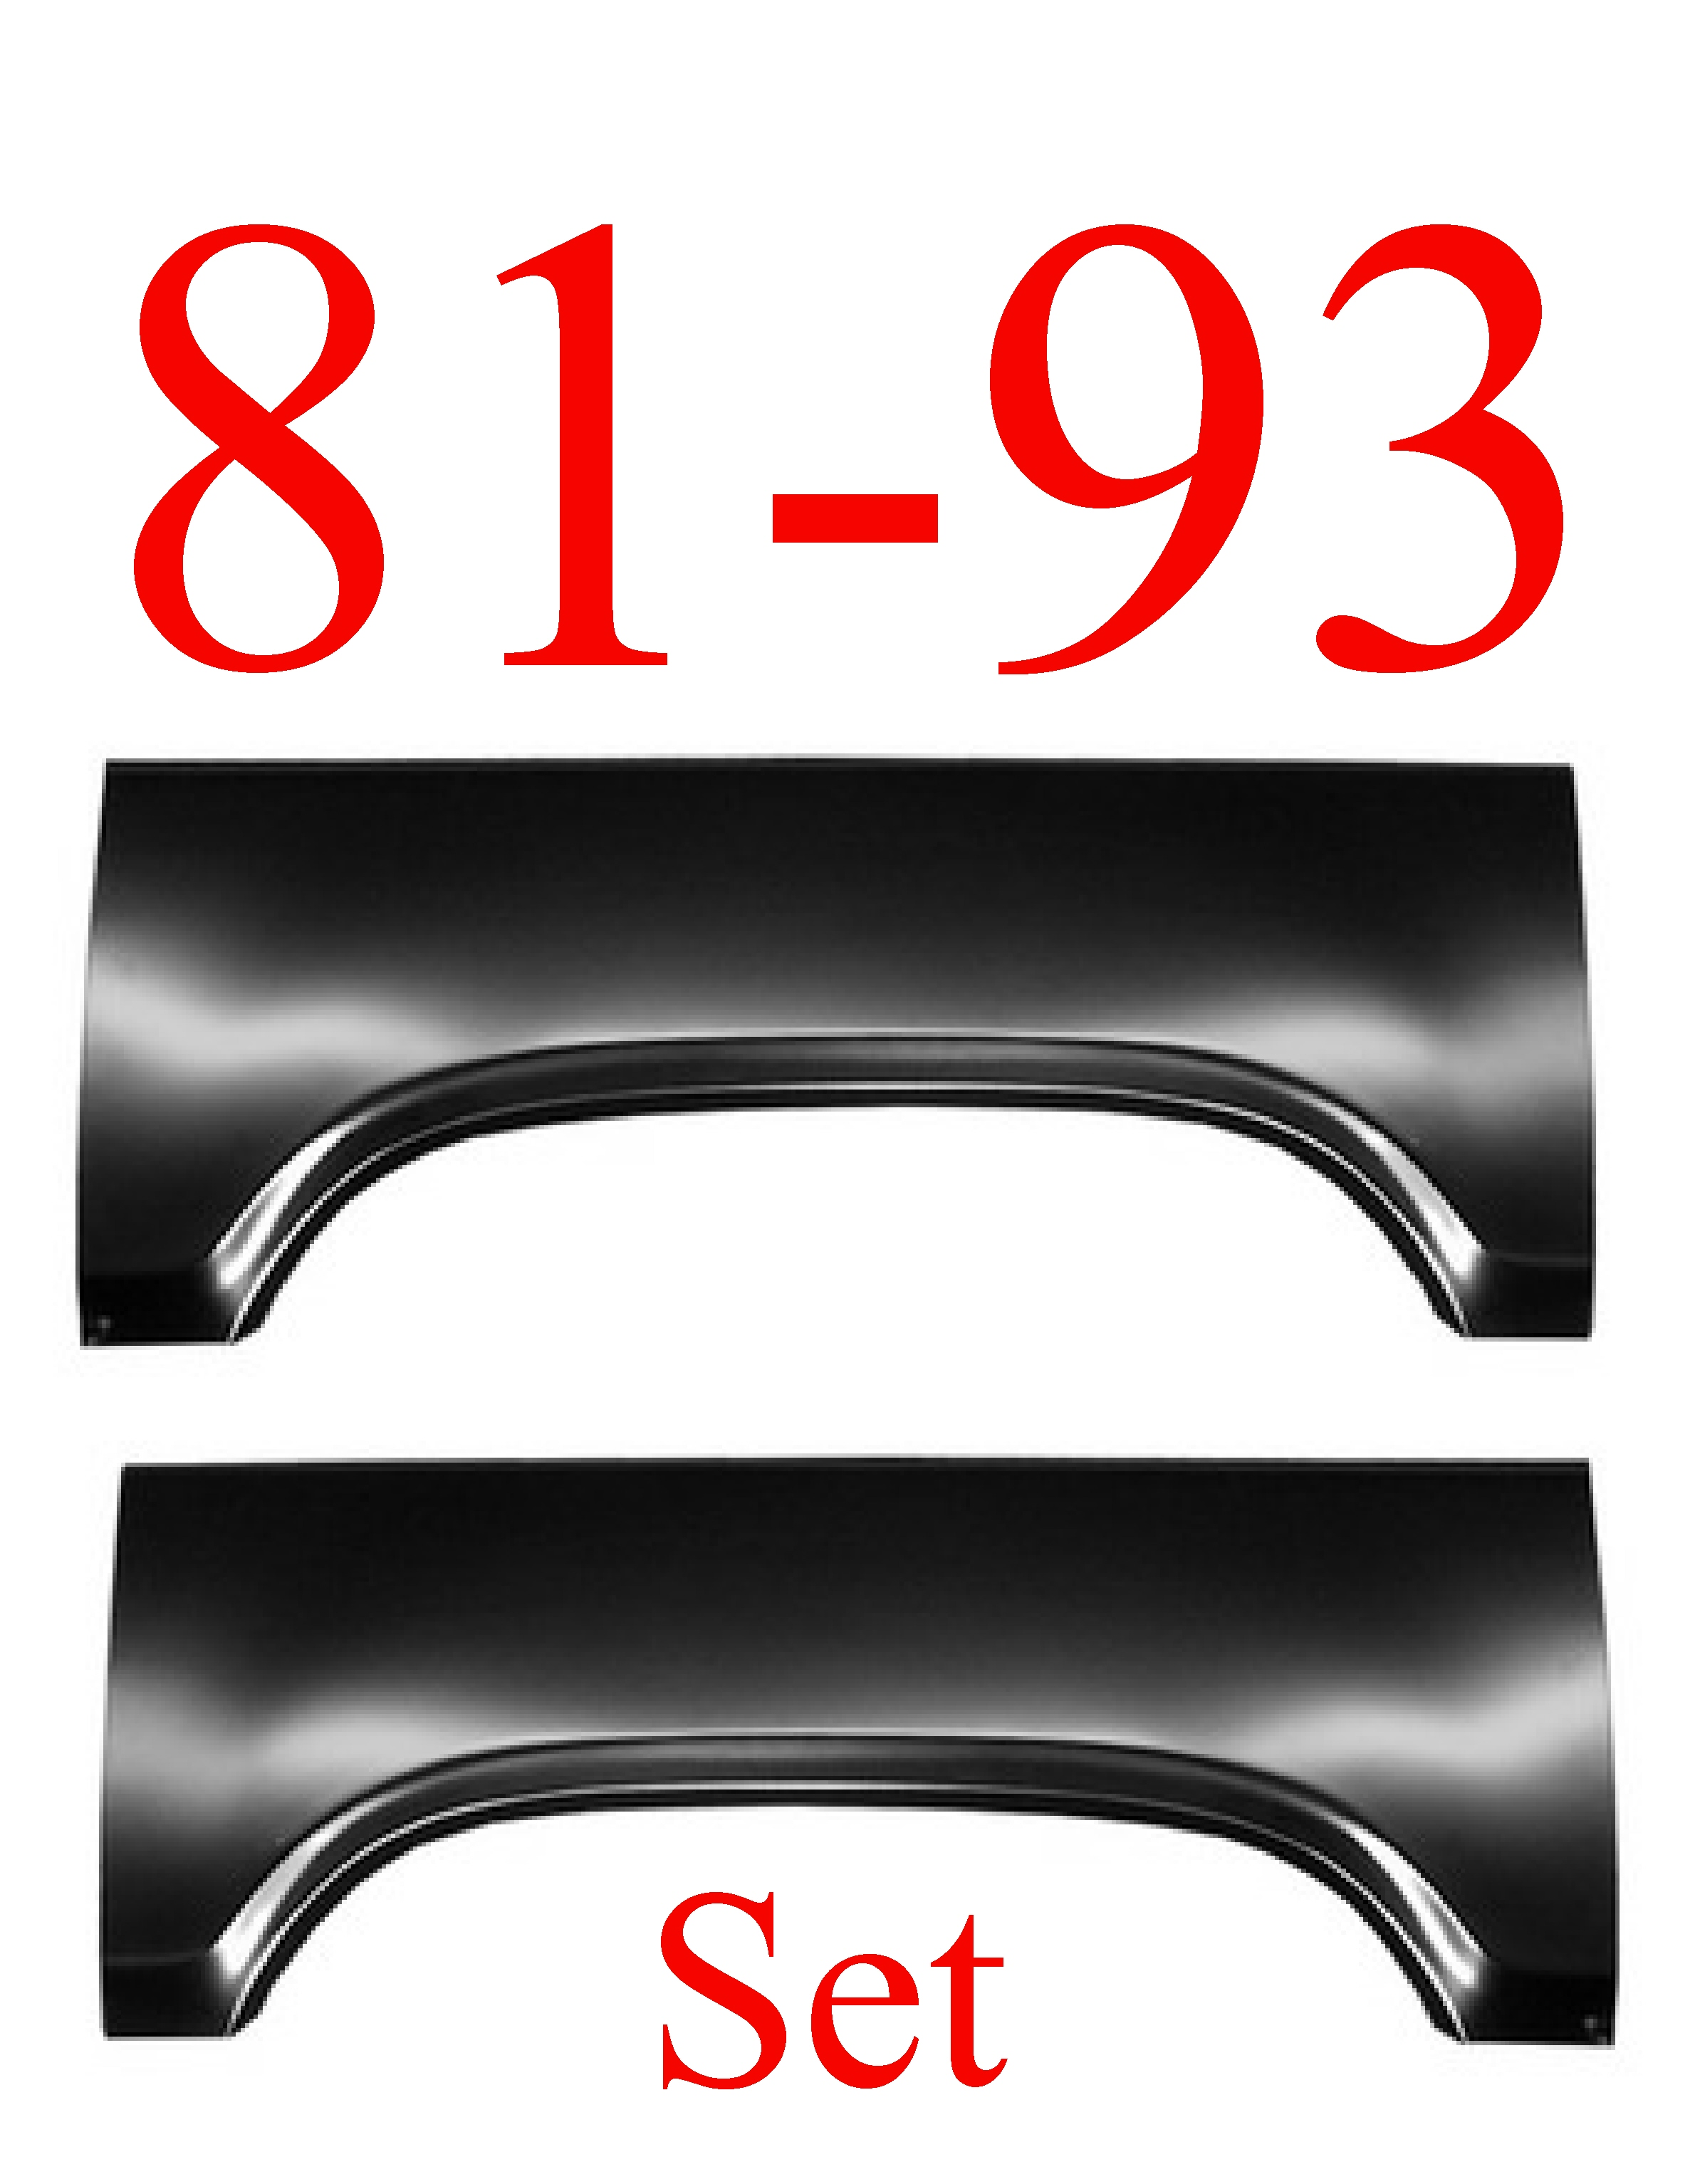 81-93 Dodge Ram Upper Arch Panel SET